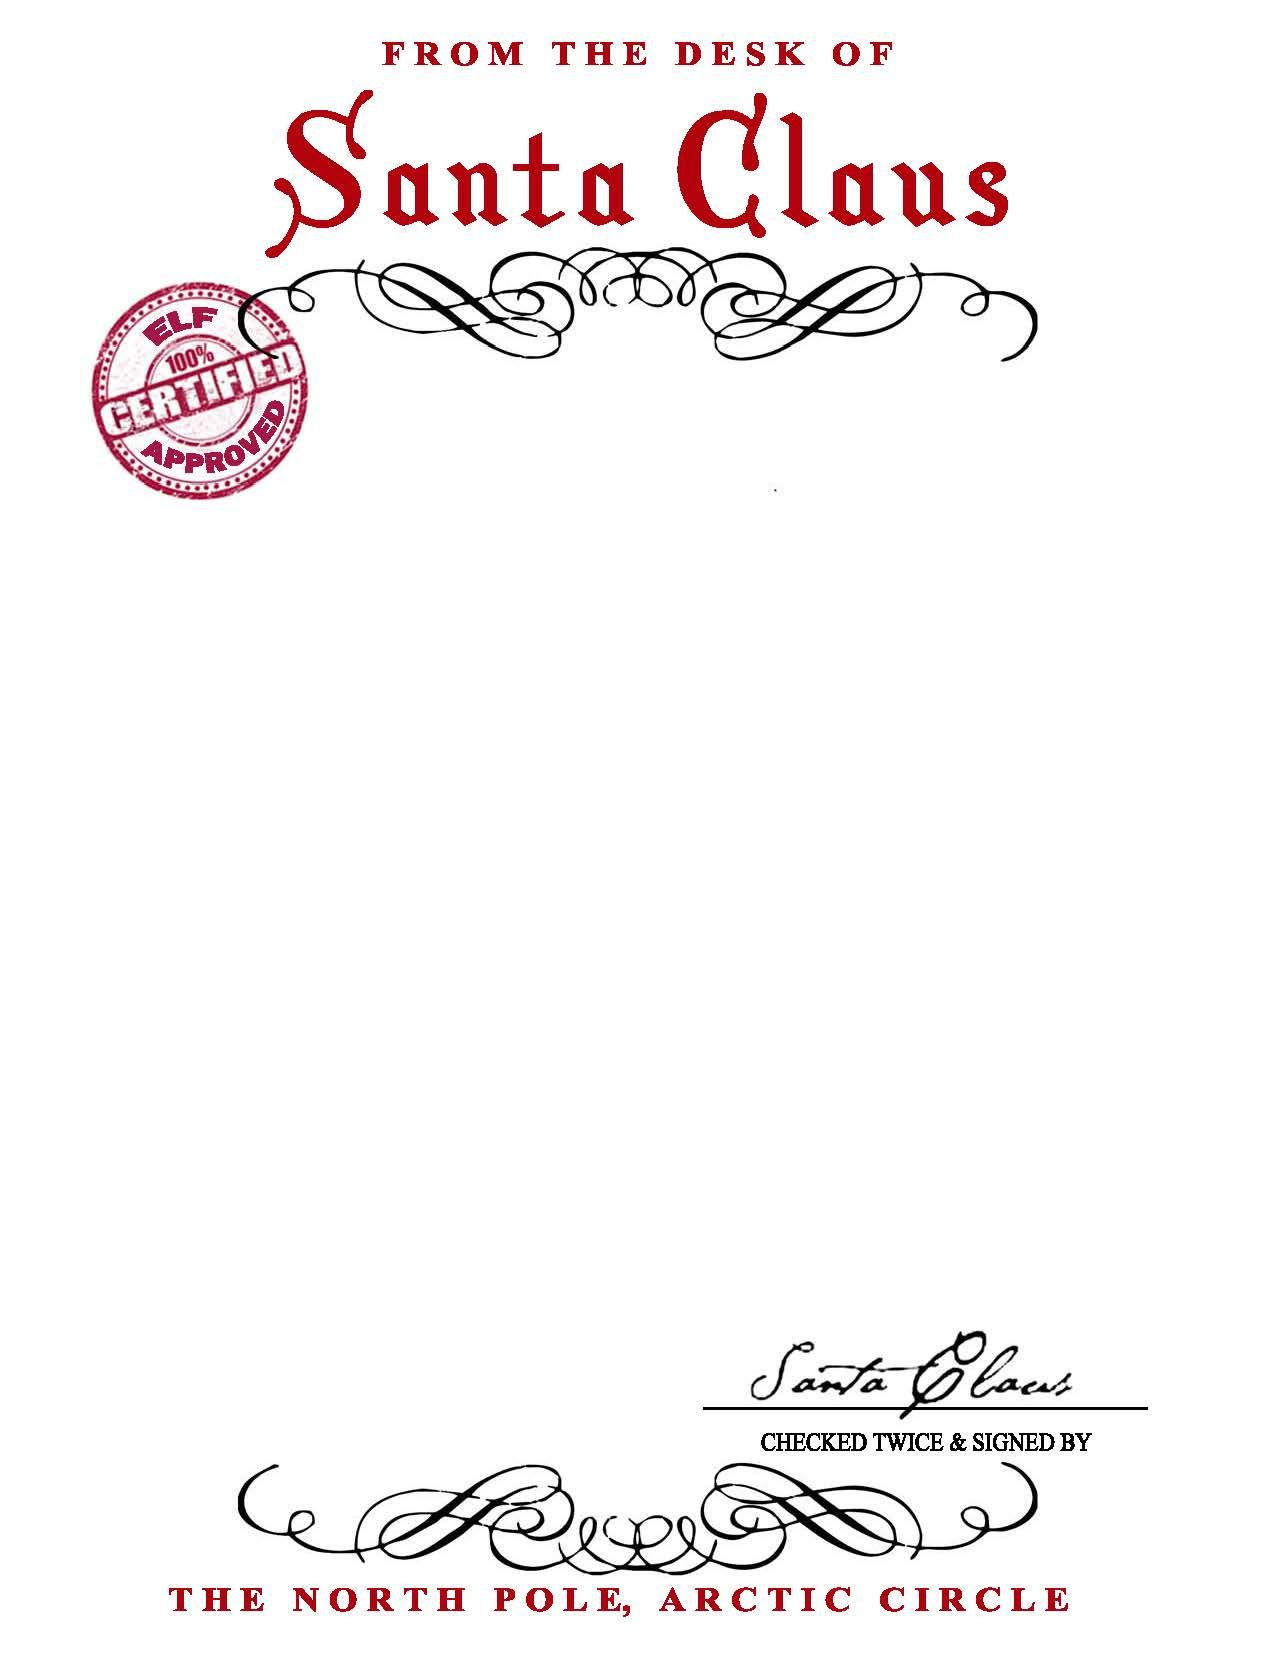 Santa claus letterhead will bring lots of joy to children santa claus letterhead will bring lots of joy to children spiritdancerdesigns